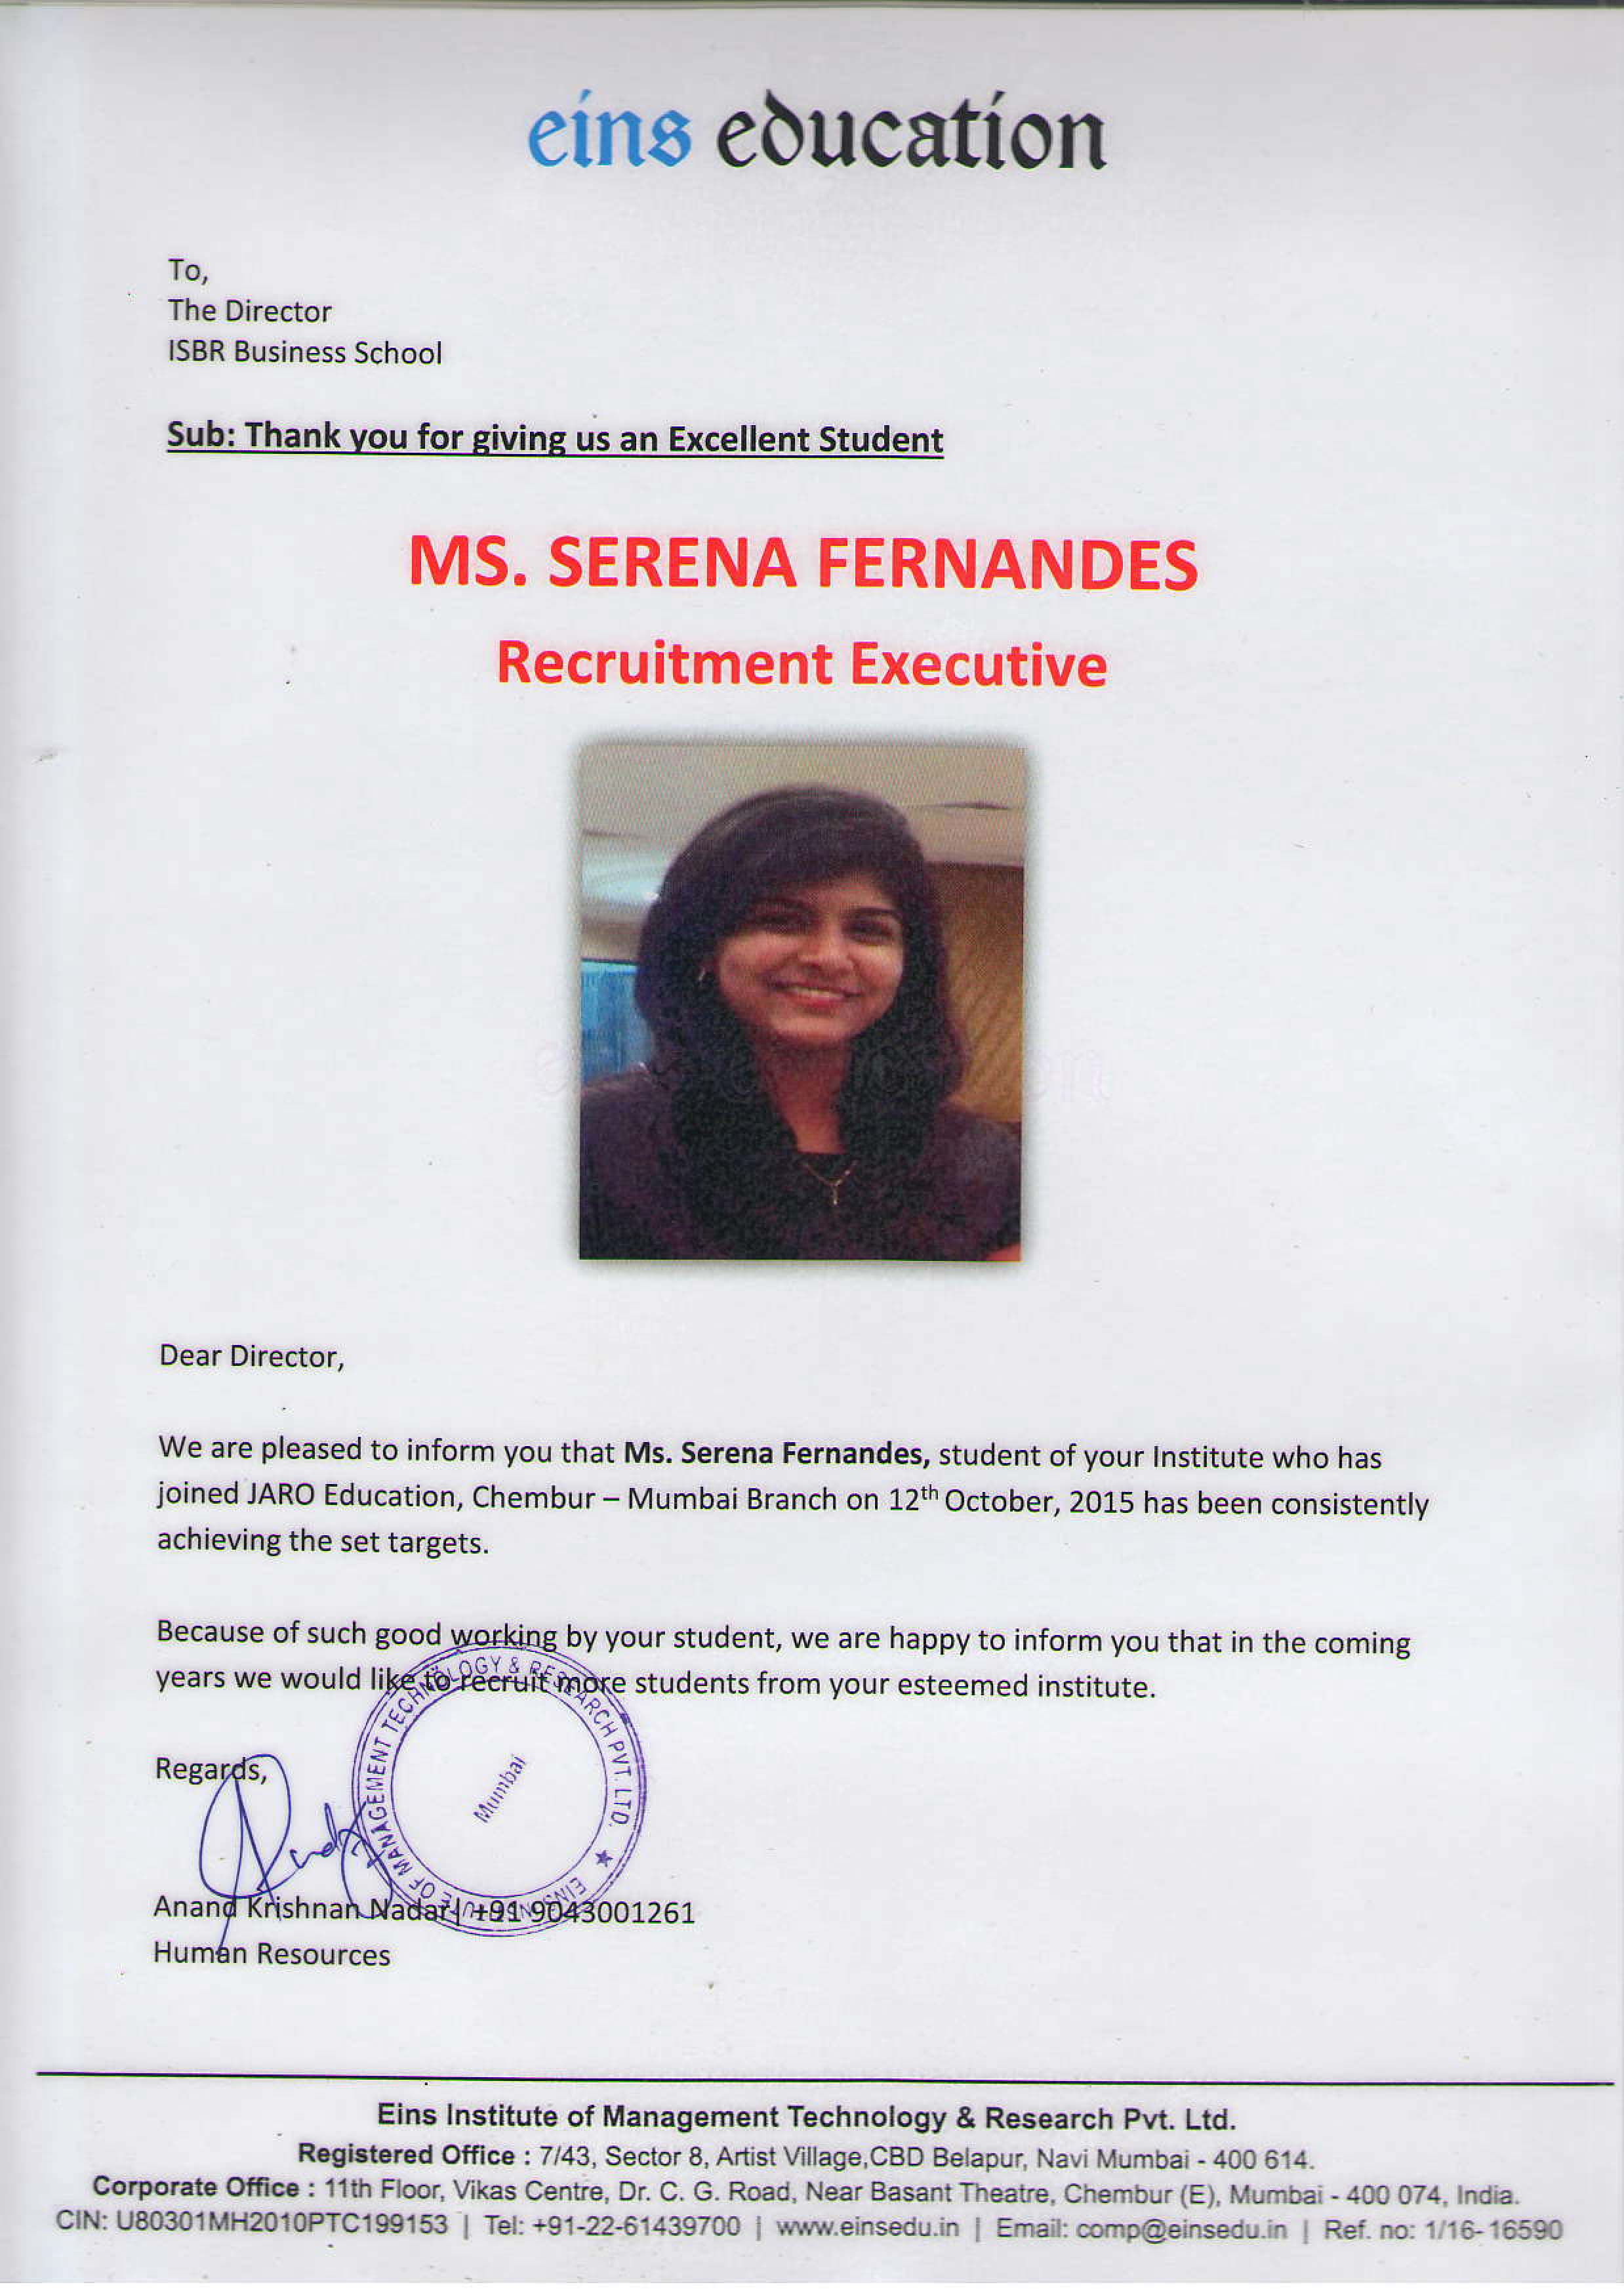 isbr business school official blog real world real learning page 4 her company writes an appreciation letter to us applauding her achievement at work and emphasizes on